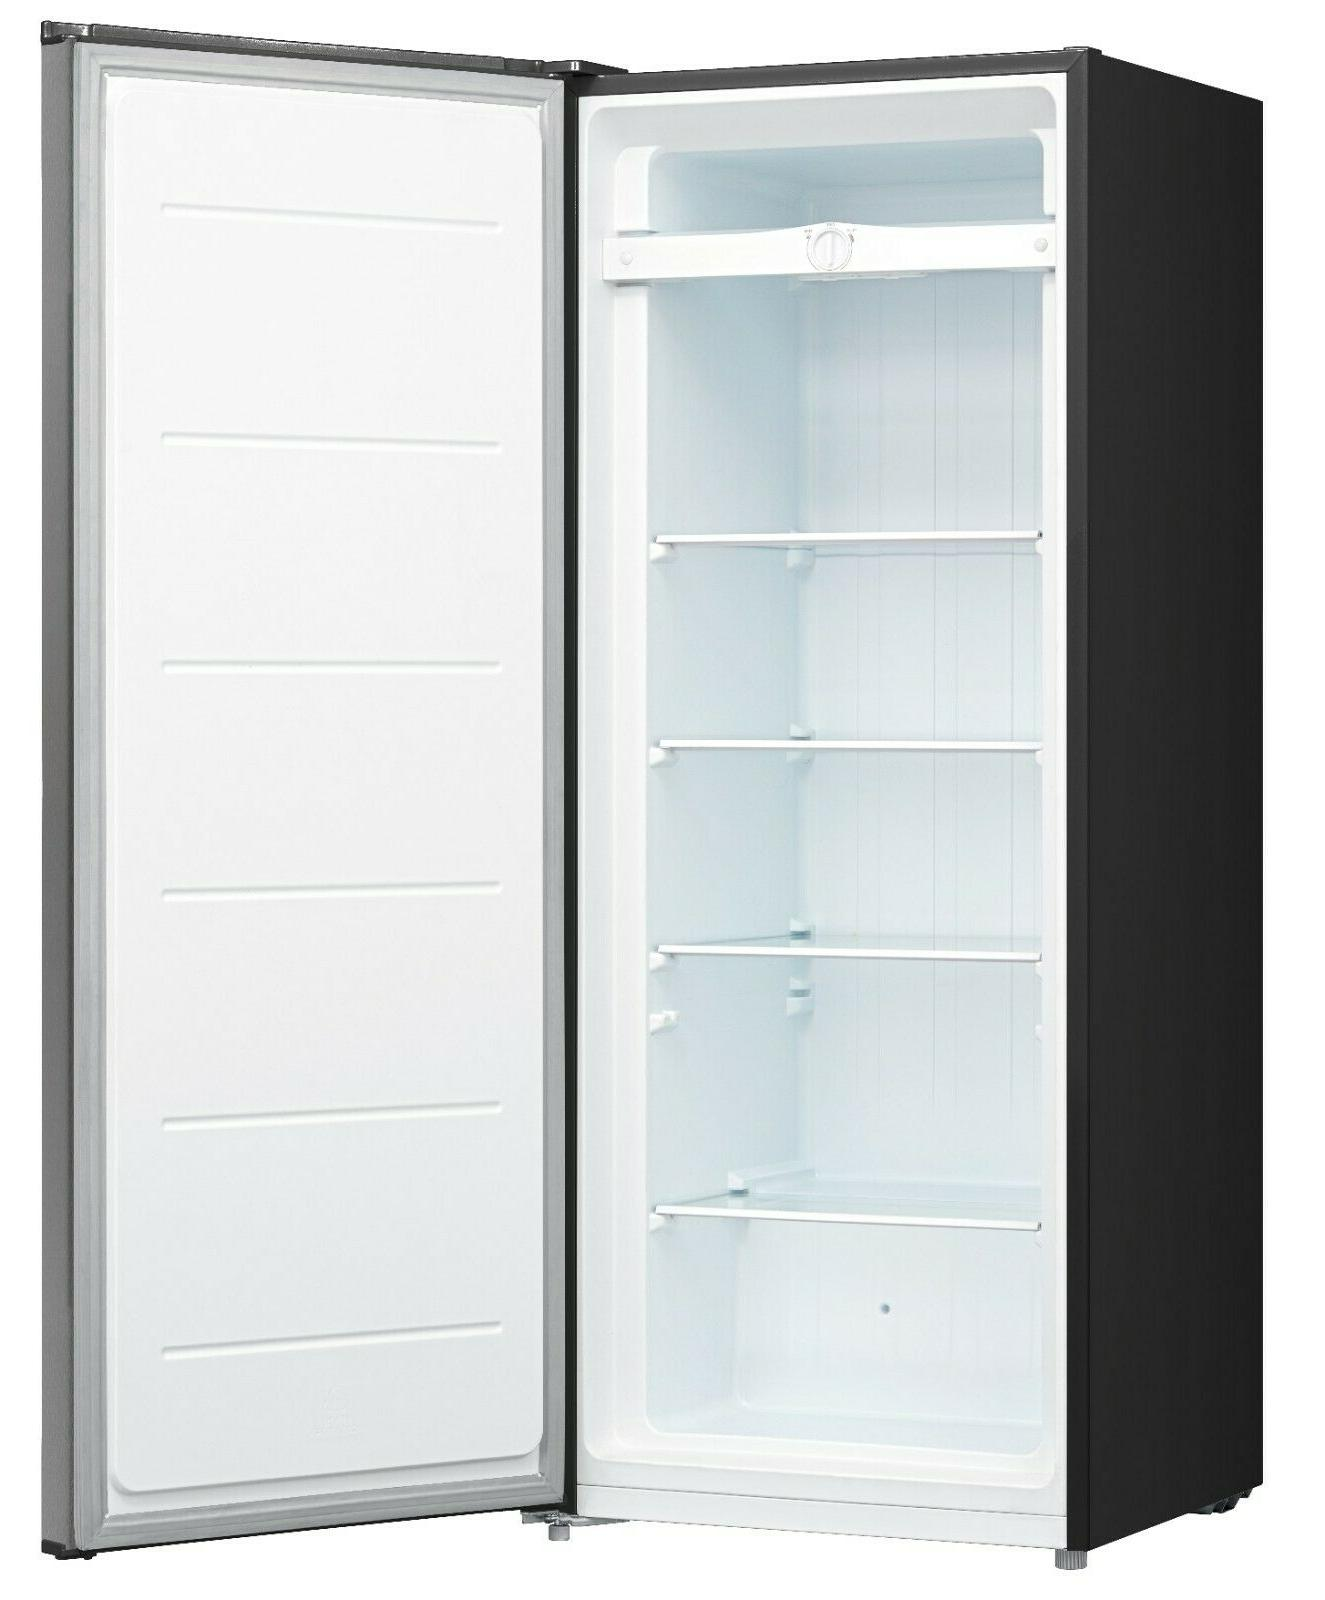 Stainless Freezer 7 Cubic